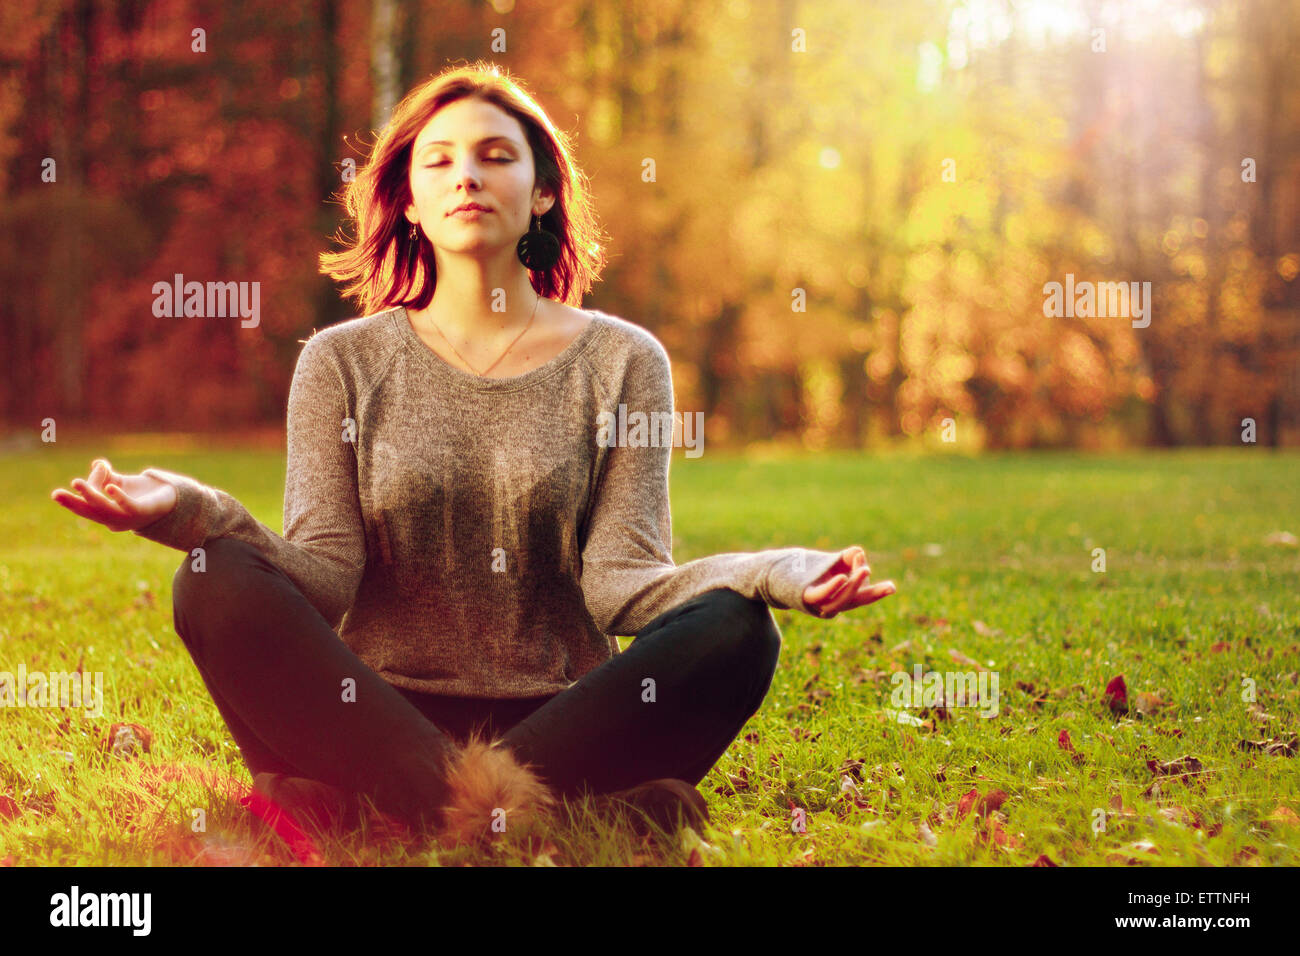 Young attractive female meditate in park. - Stock Image